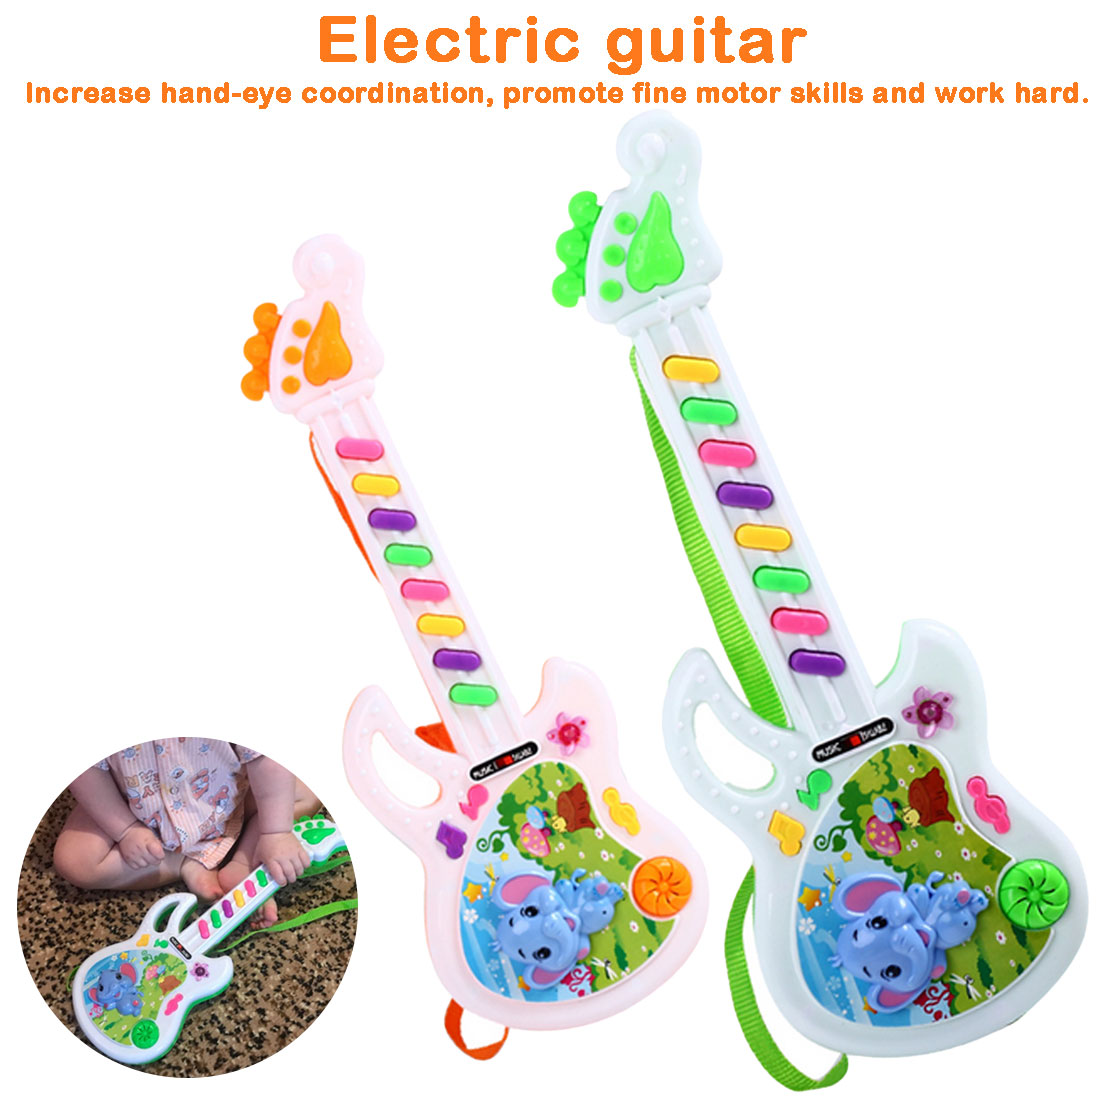 Electronic Music Guitar Baby Acoustic Elephant Guitar Musical Instrument Baby Toy For Children's Gift